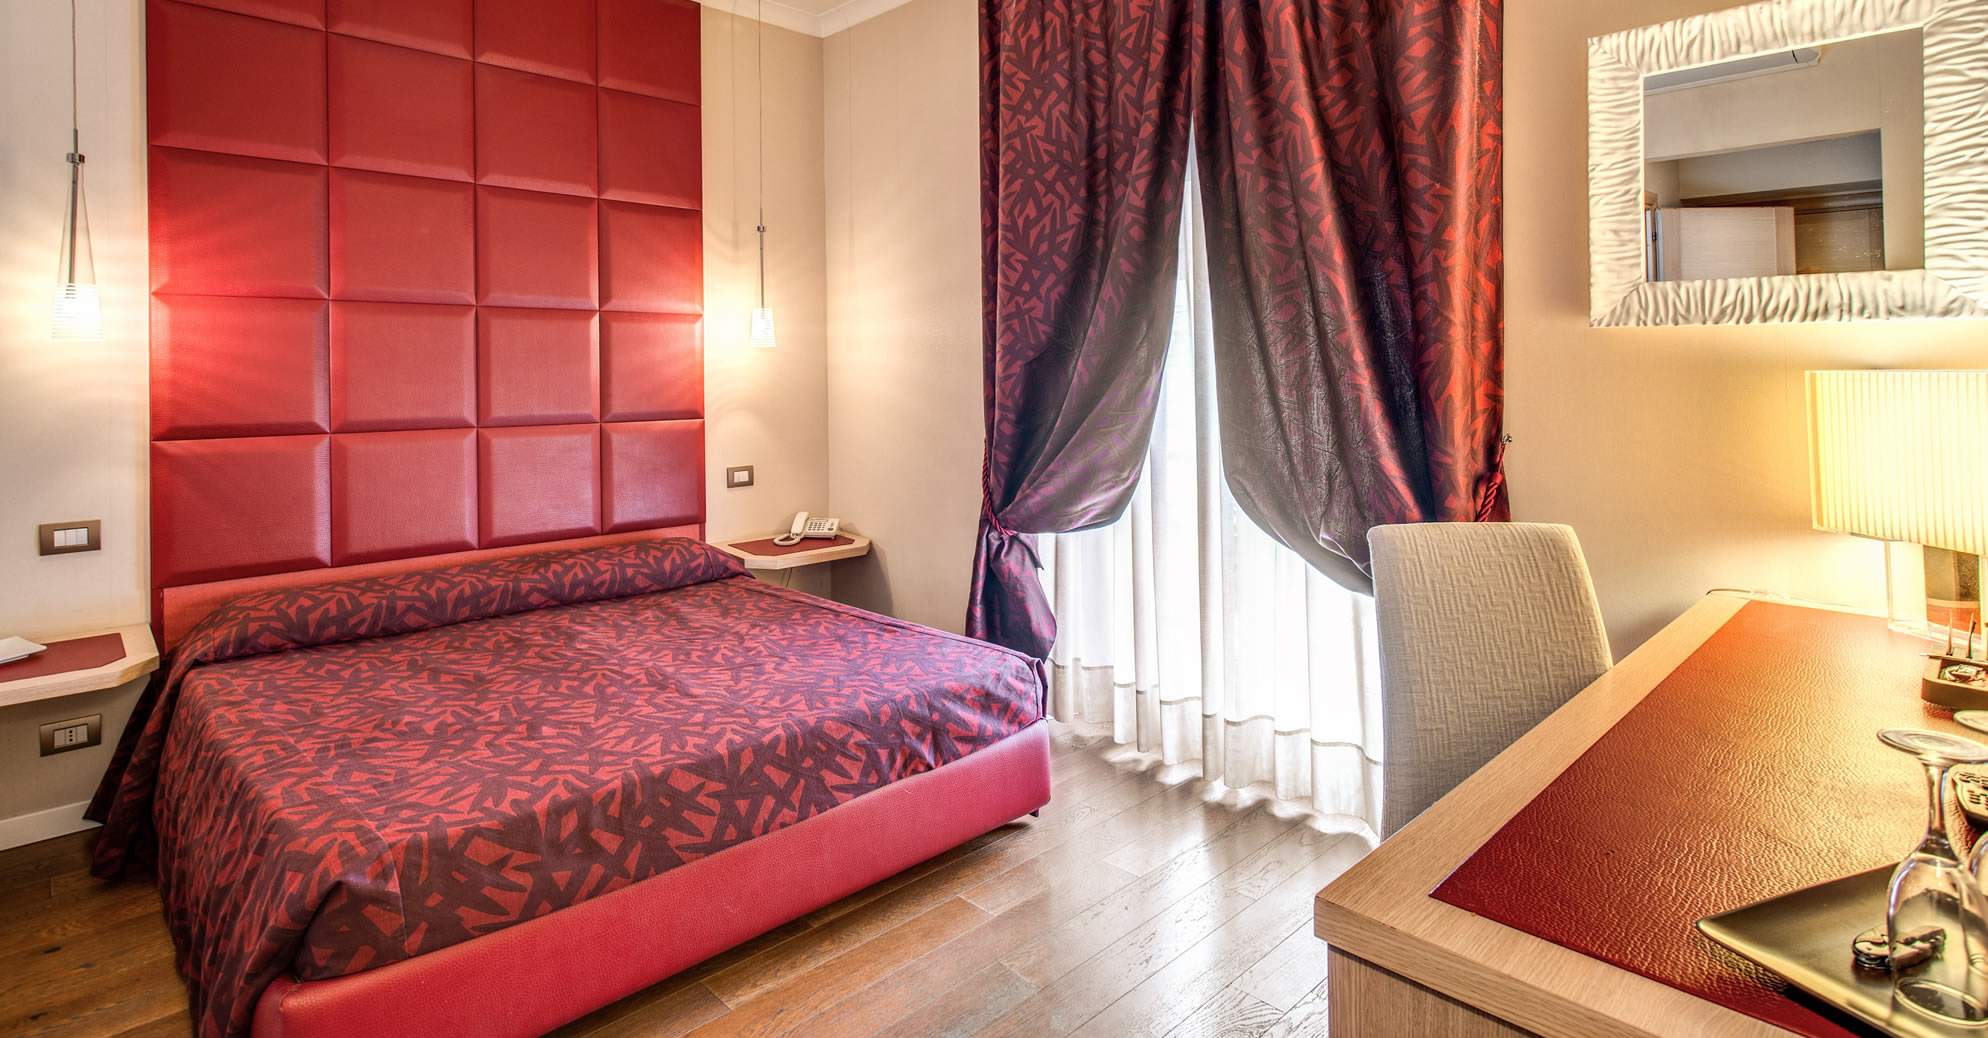 Boutique guesthouse roma official site four star city for Boutiques hotels